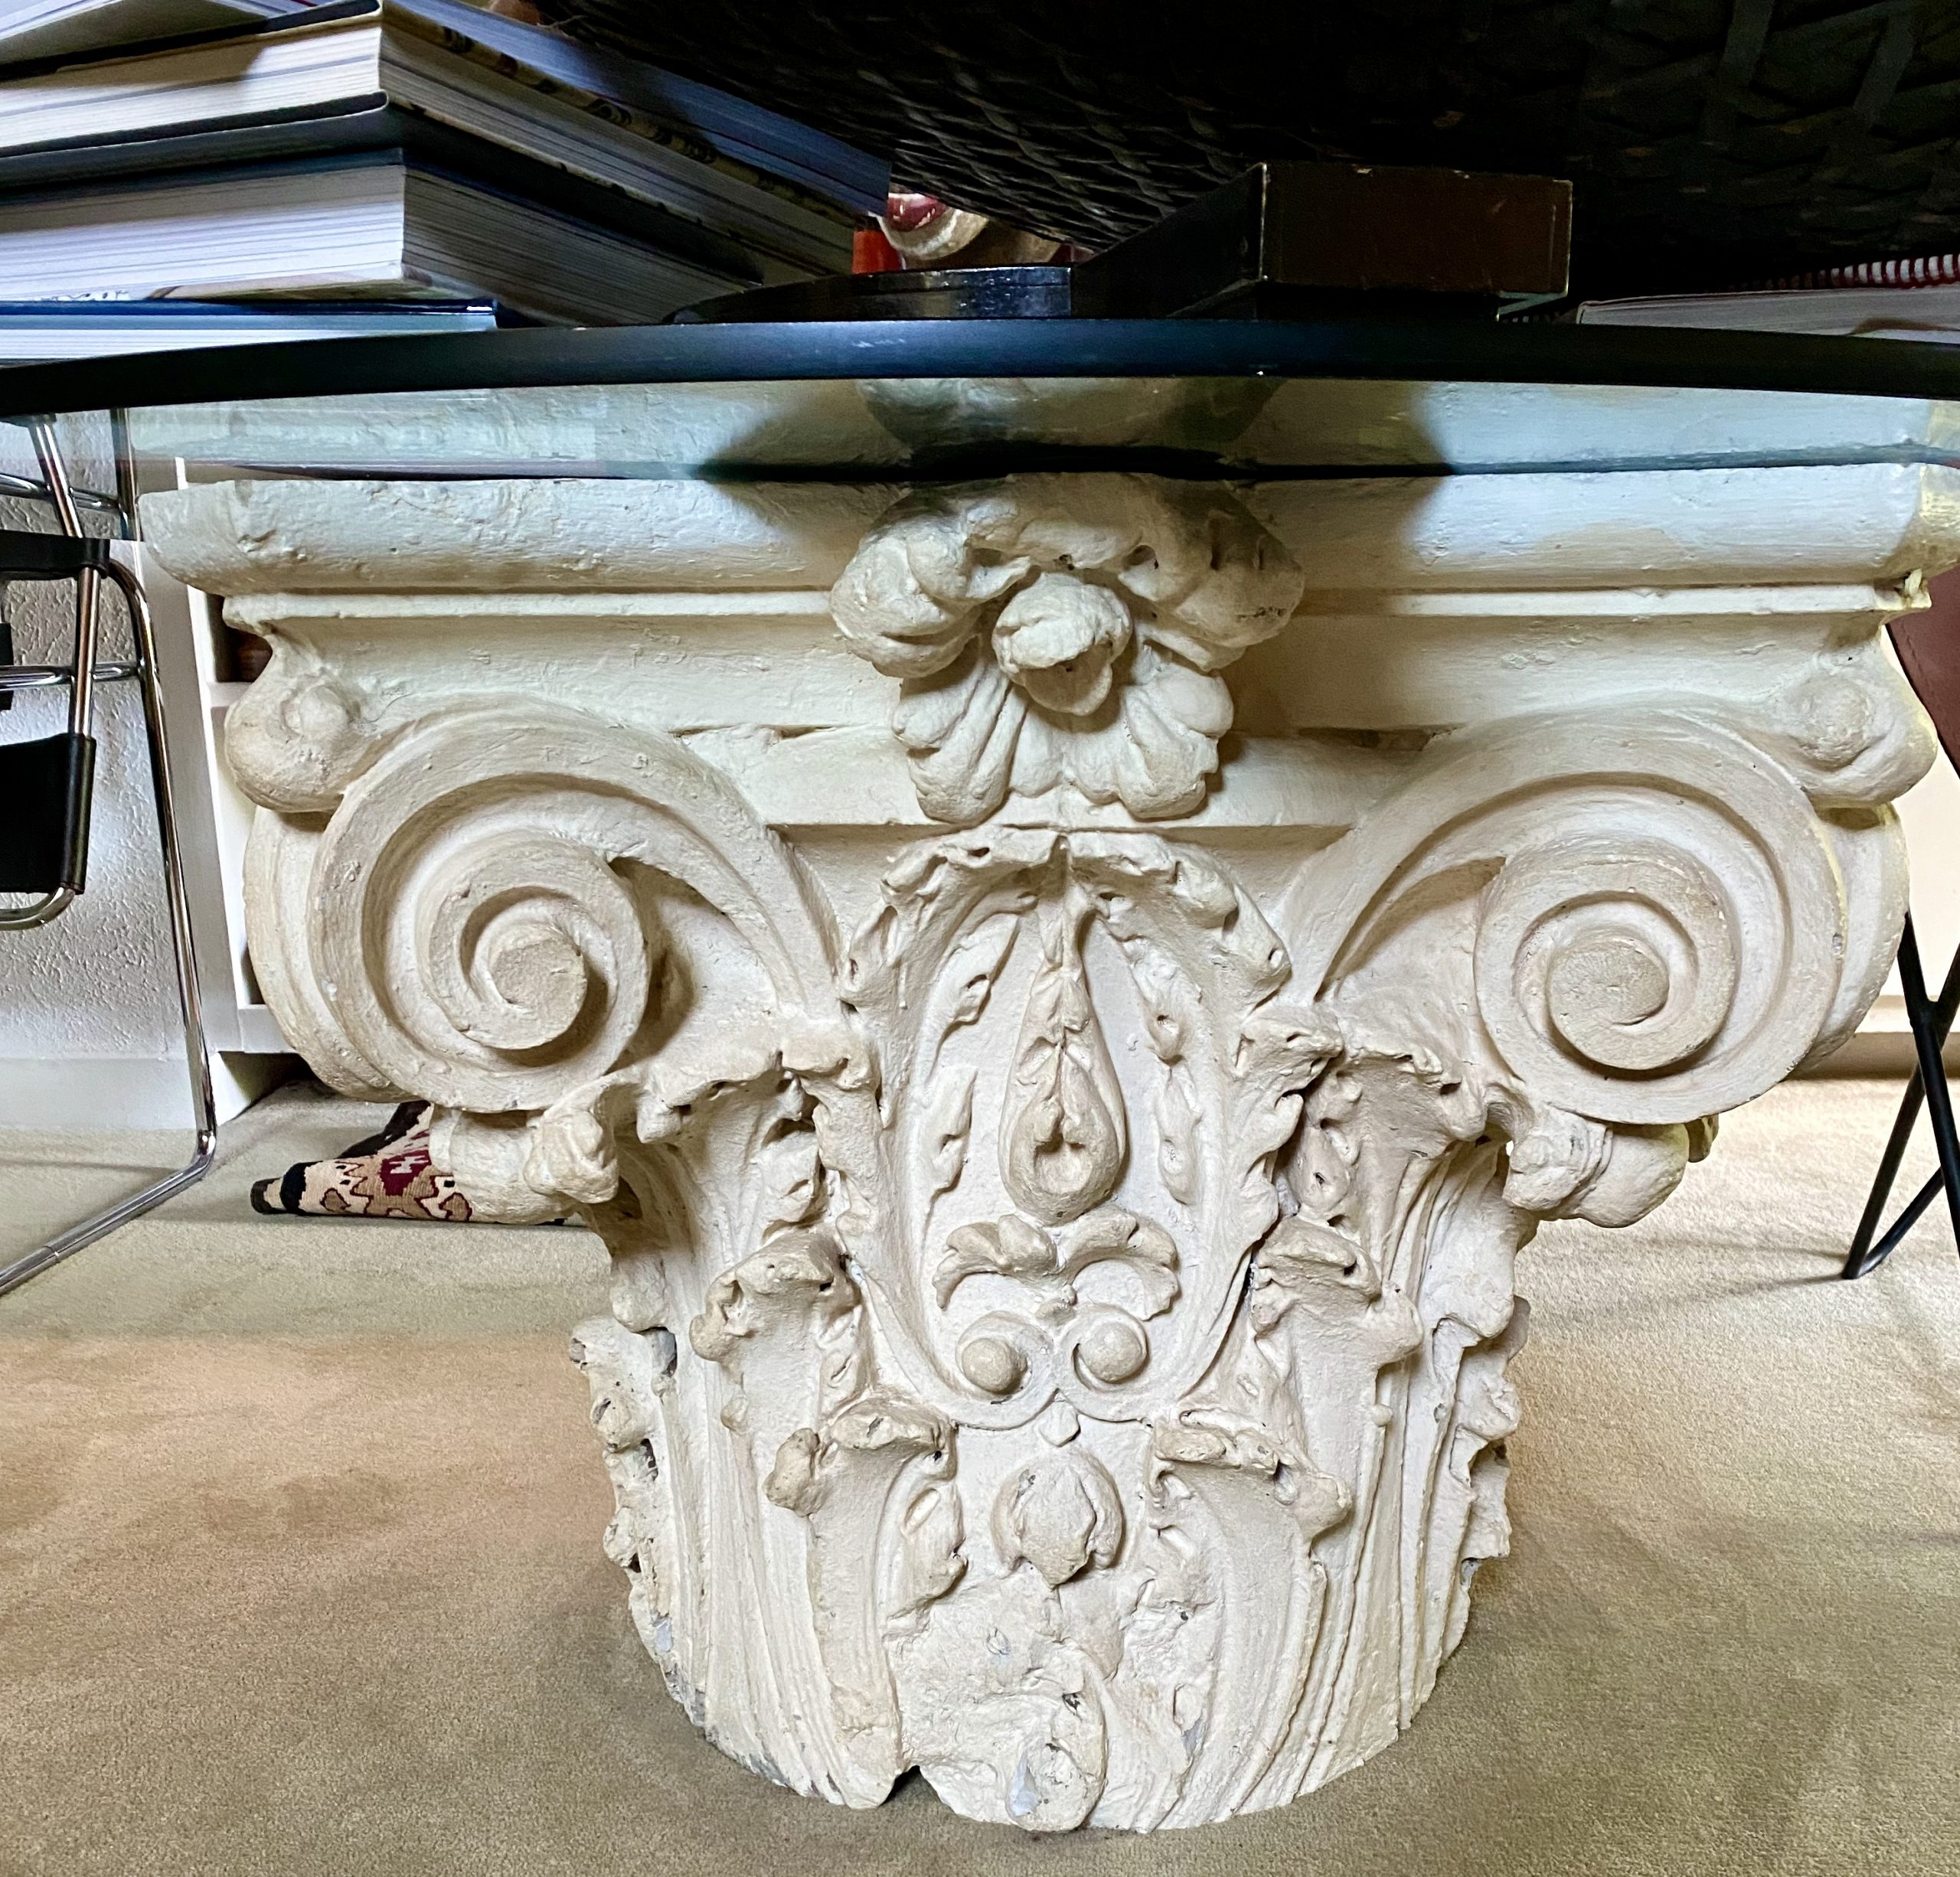 08-chambers-architects-corinthian-column-capital-table-base